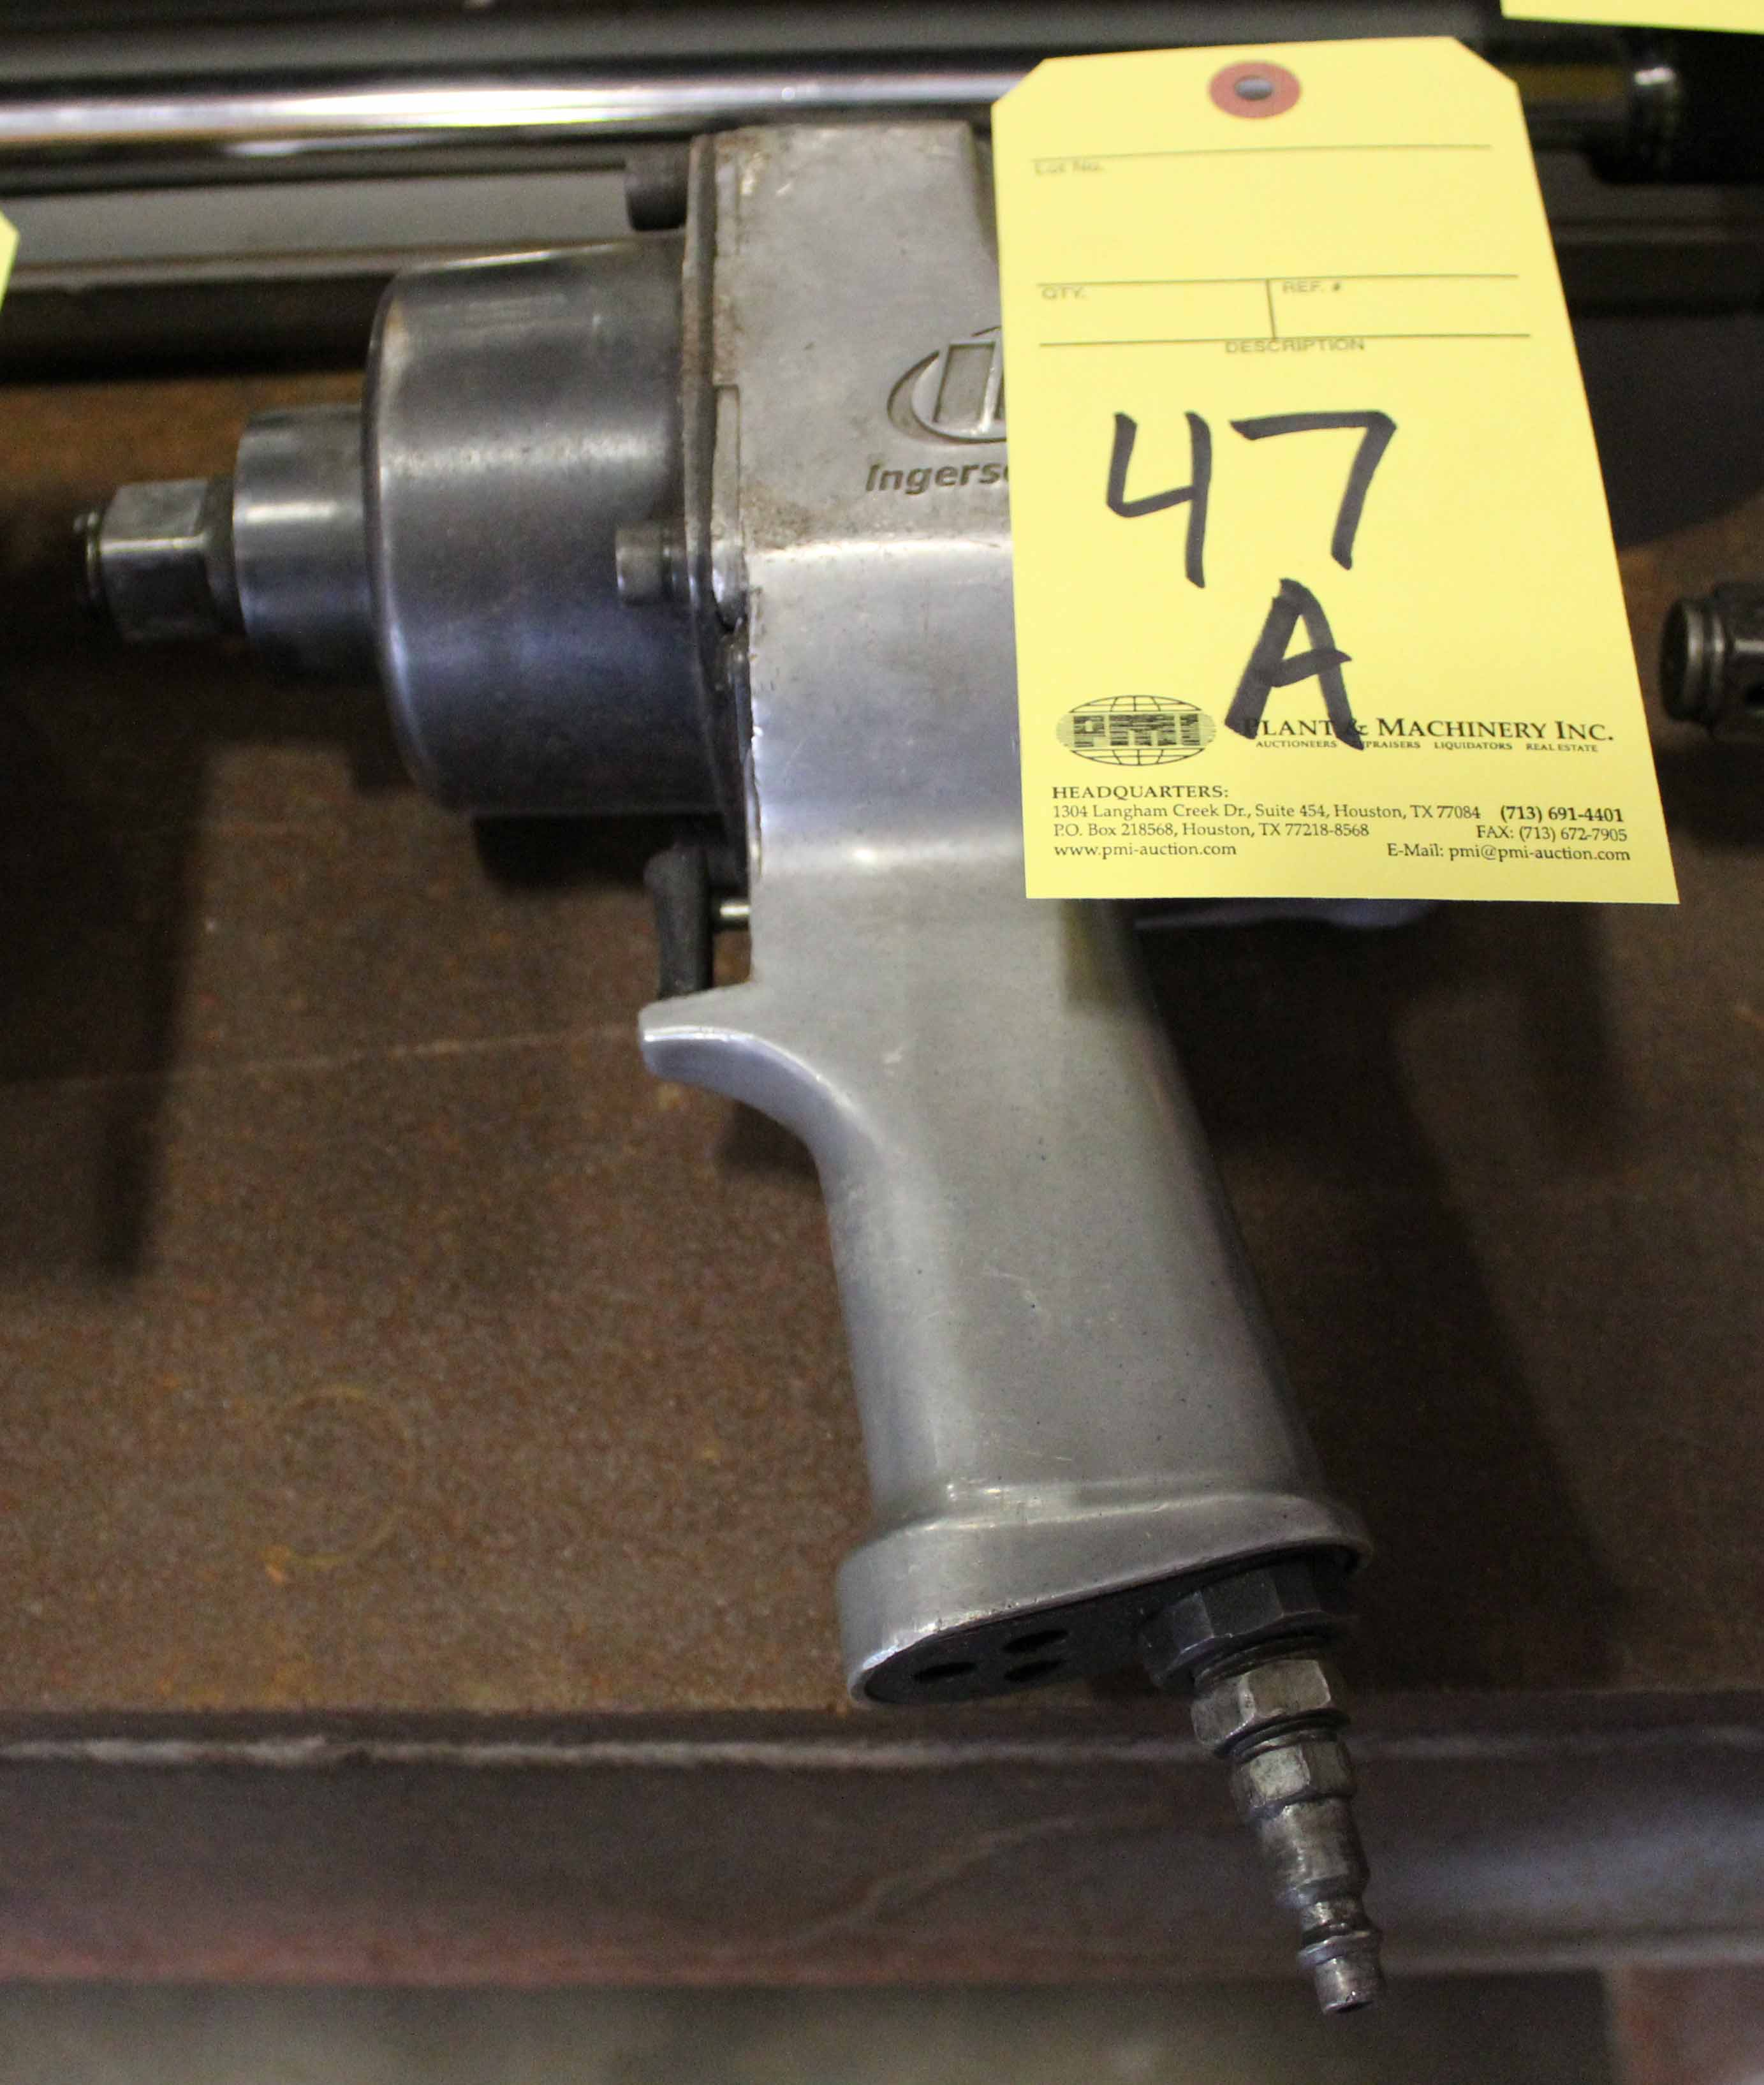 "Lot 47A - IMPACT WRENCH, INGERSOLL RAND, 3/4"" drive"